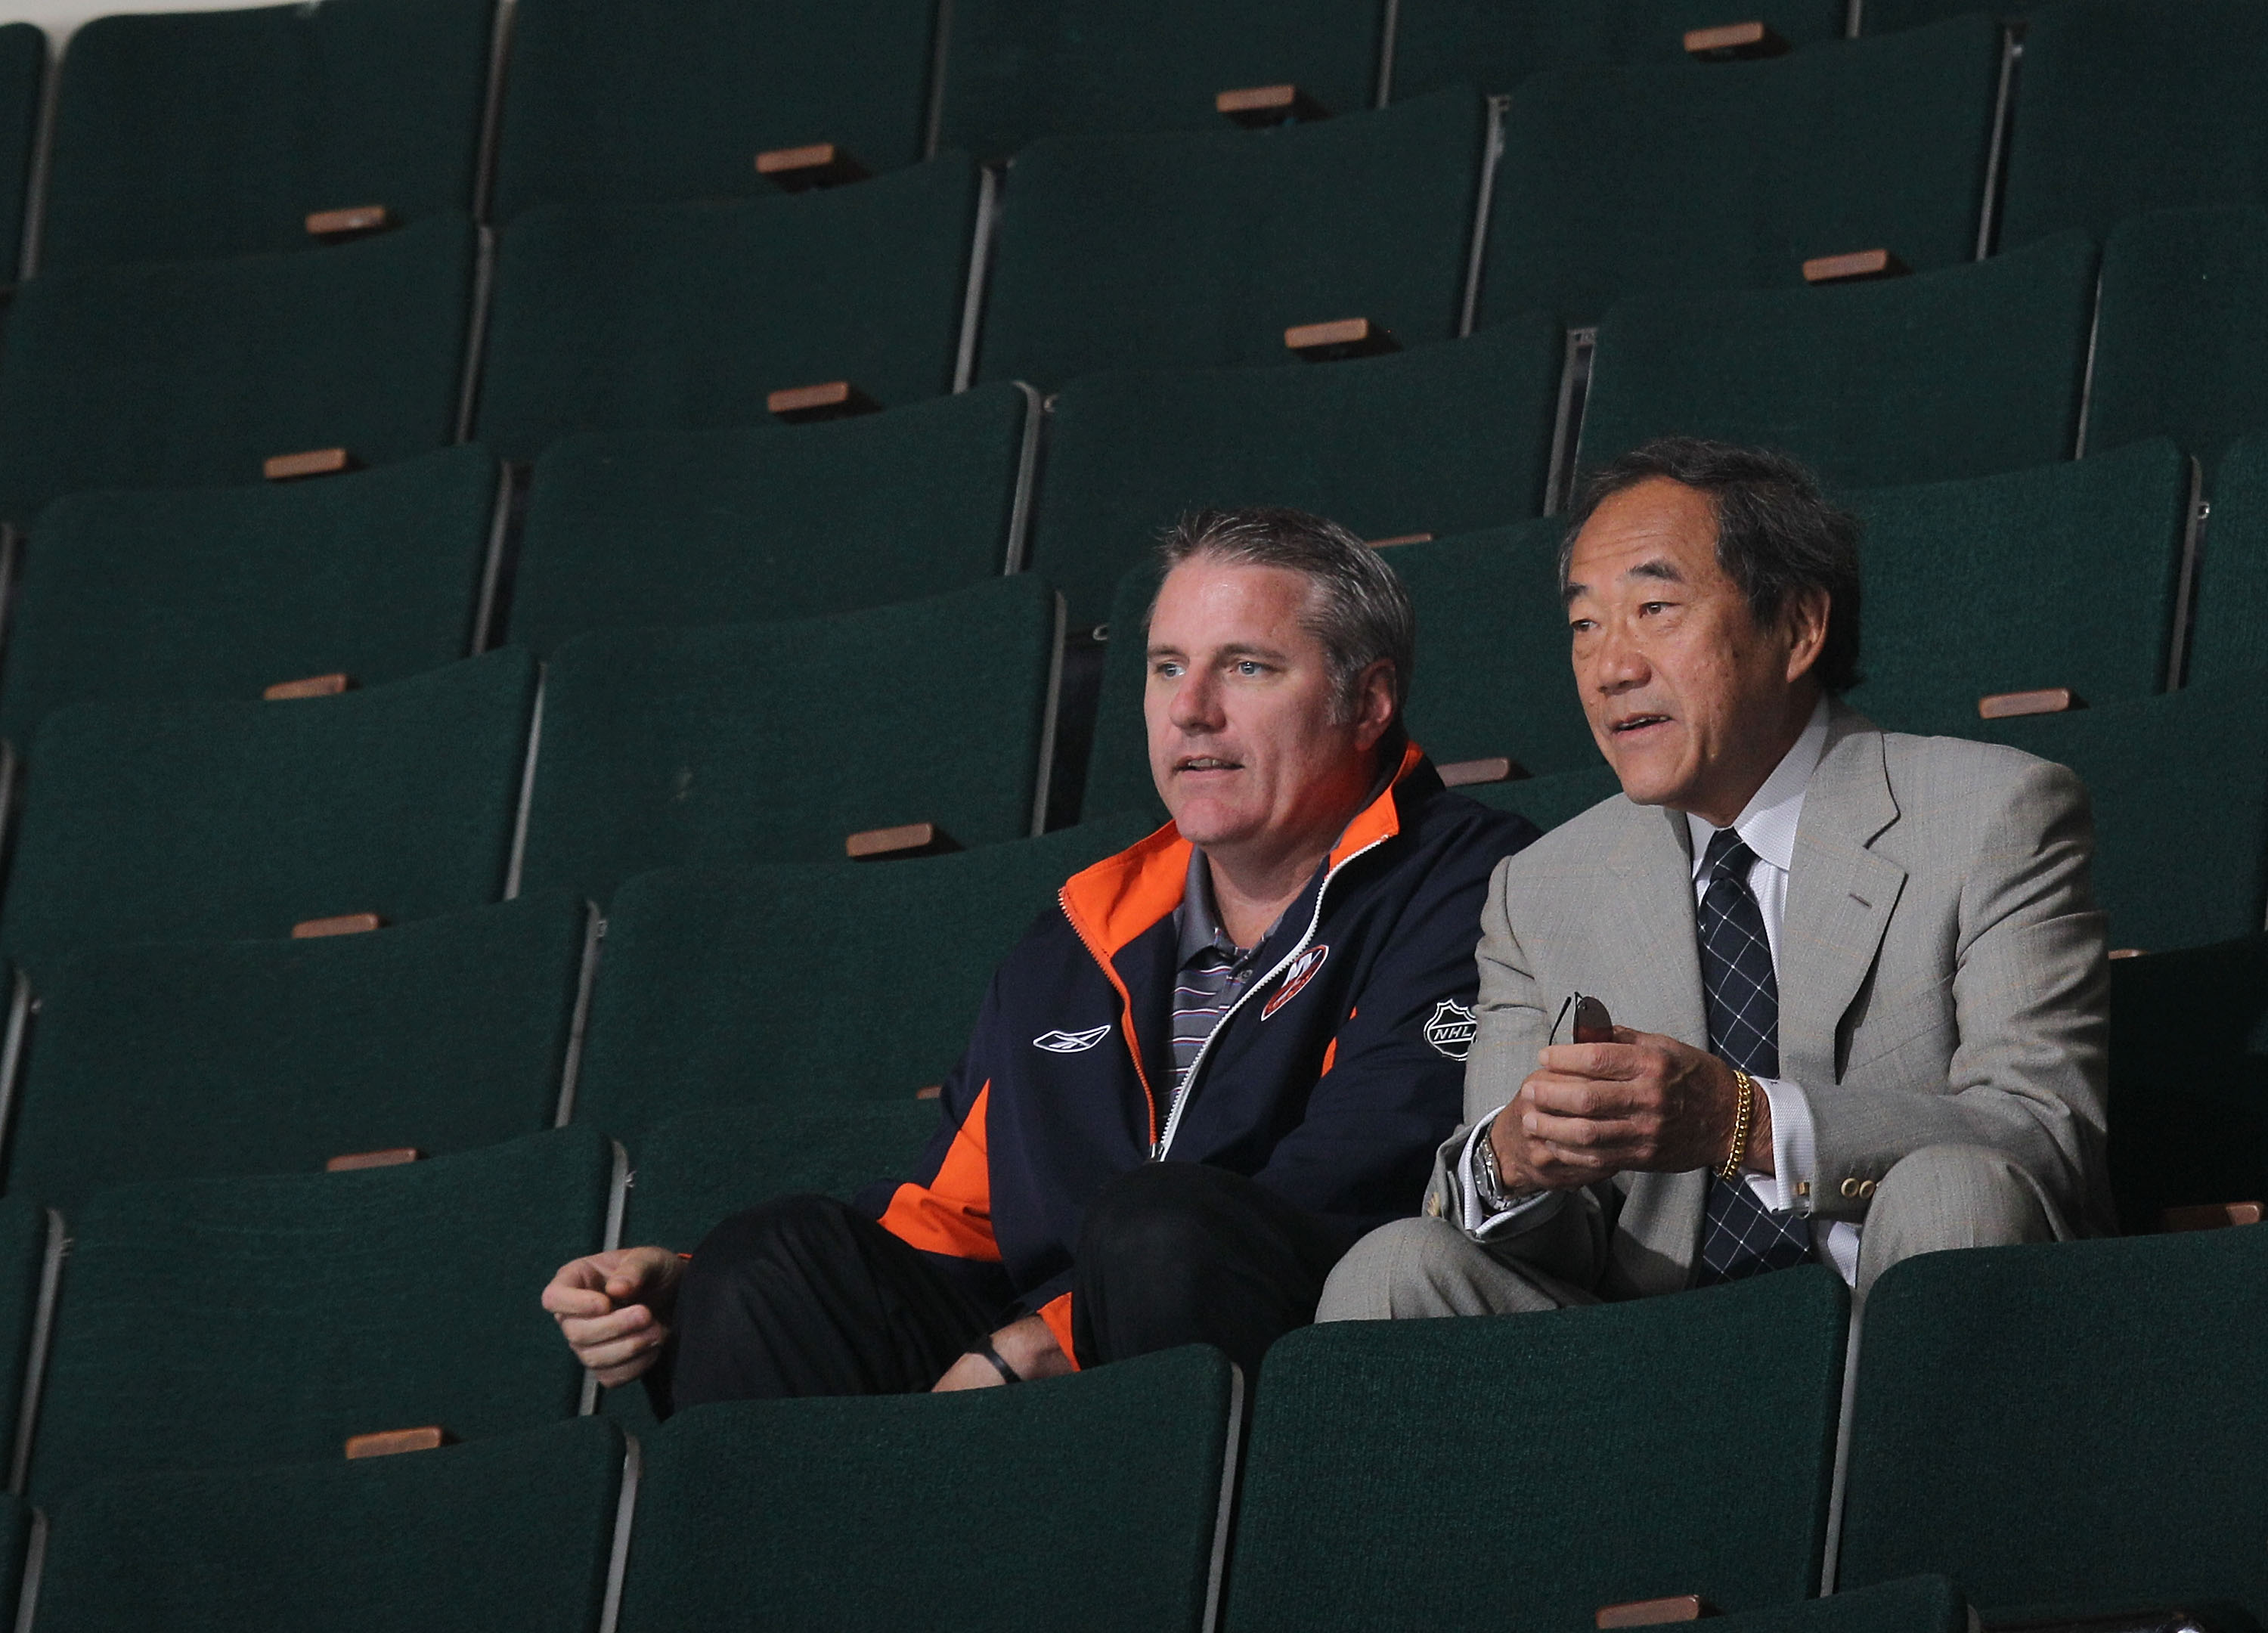 UNIONDALE, NY - JULY 07: General Manager Garth Snow and team owner Charles Wang watch the New York Islanders rookie camp at Nassau Veterans Memorial Coliseum on July 7, 2010 in Uniondale, New York. (Photo by Bruce Bennett/Getty Images)